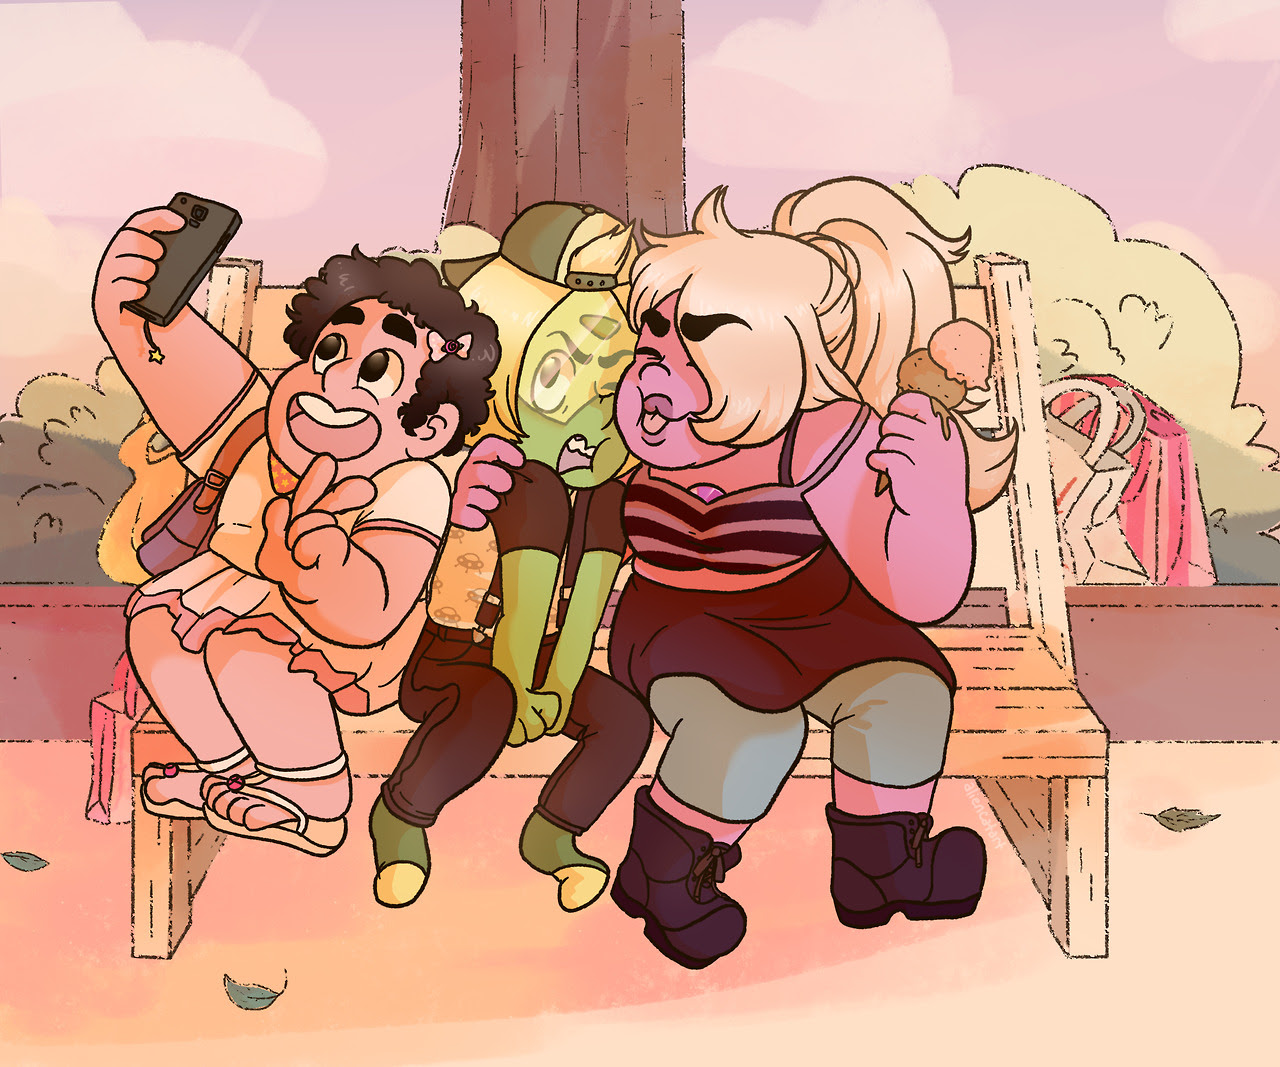 The Shorty Squad go out shopping making store clerks everywhere confused as to why that small green girl refuses to even try on shoes bonus selfie!: